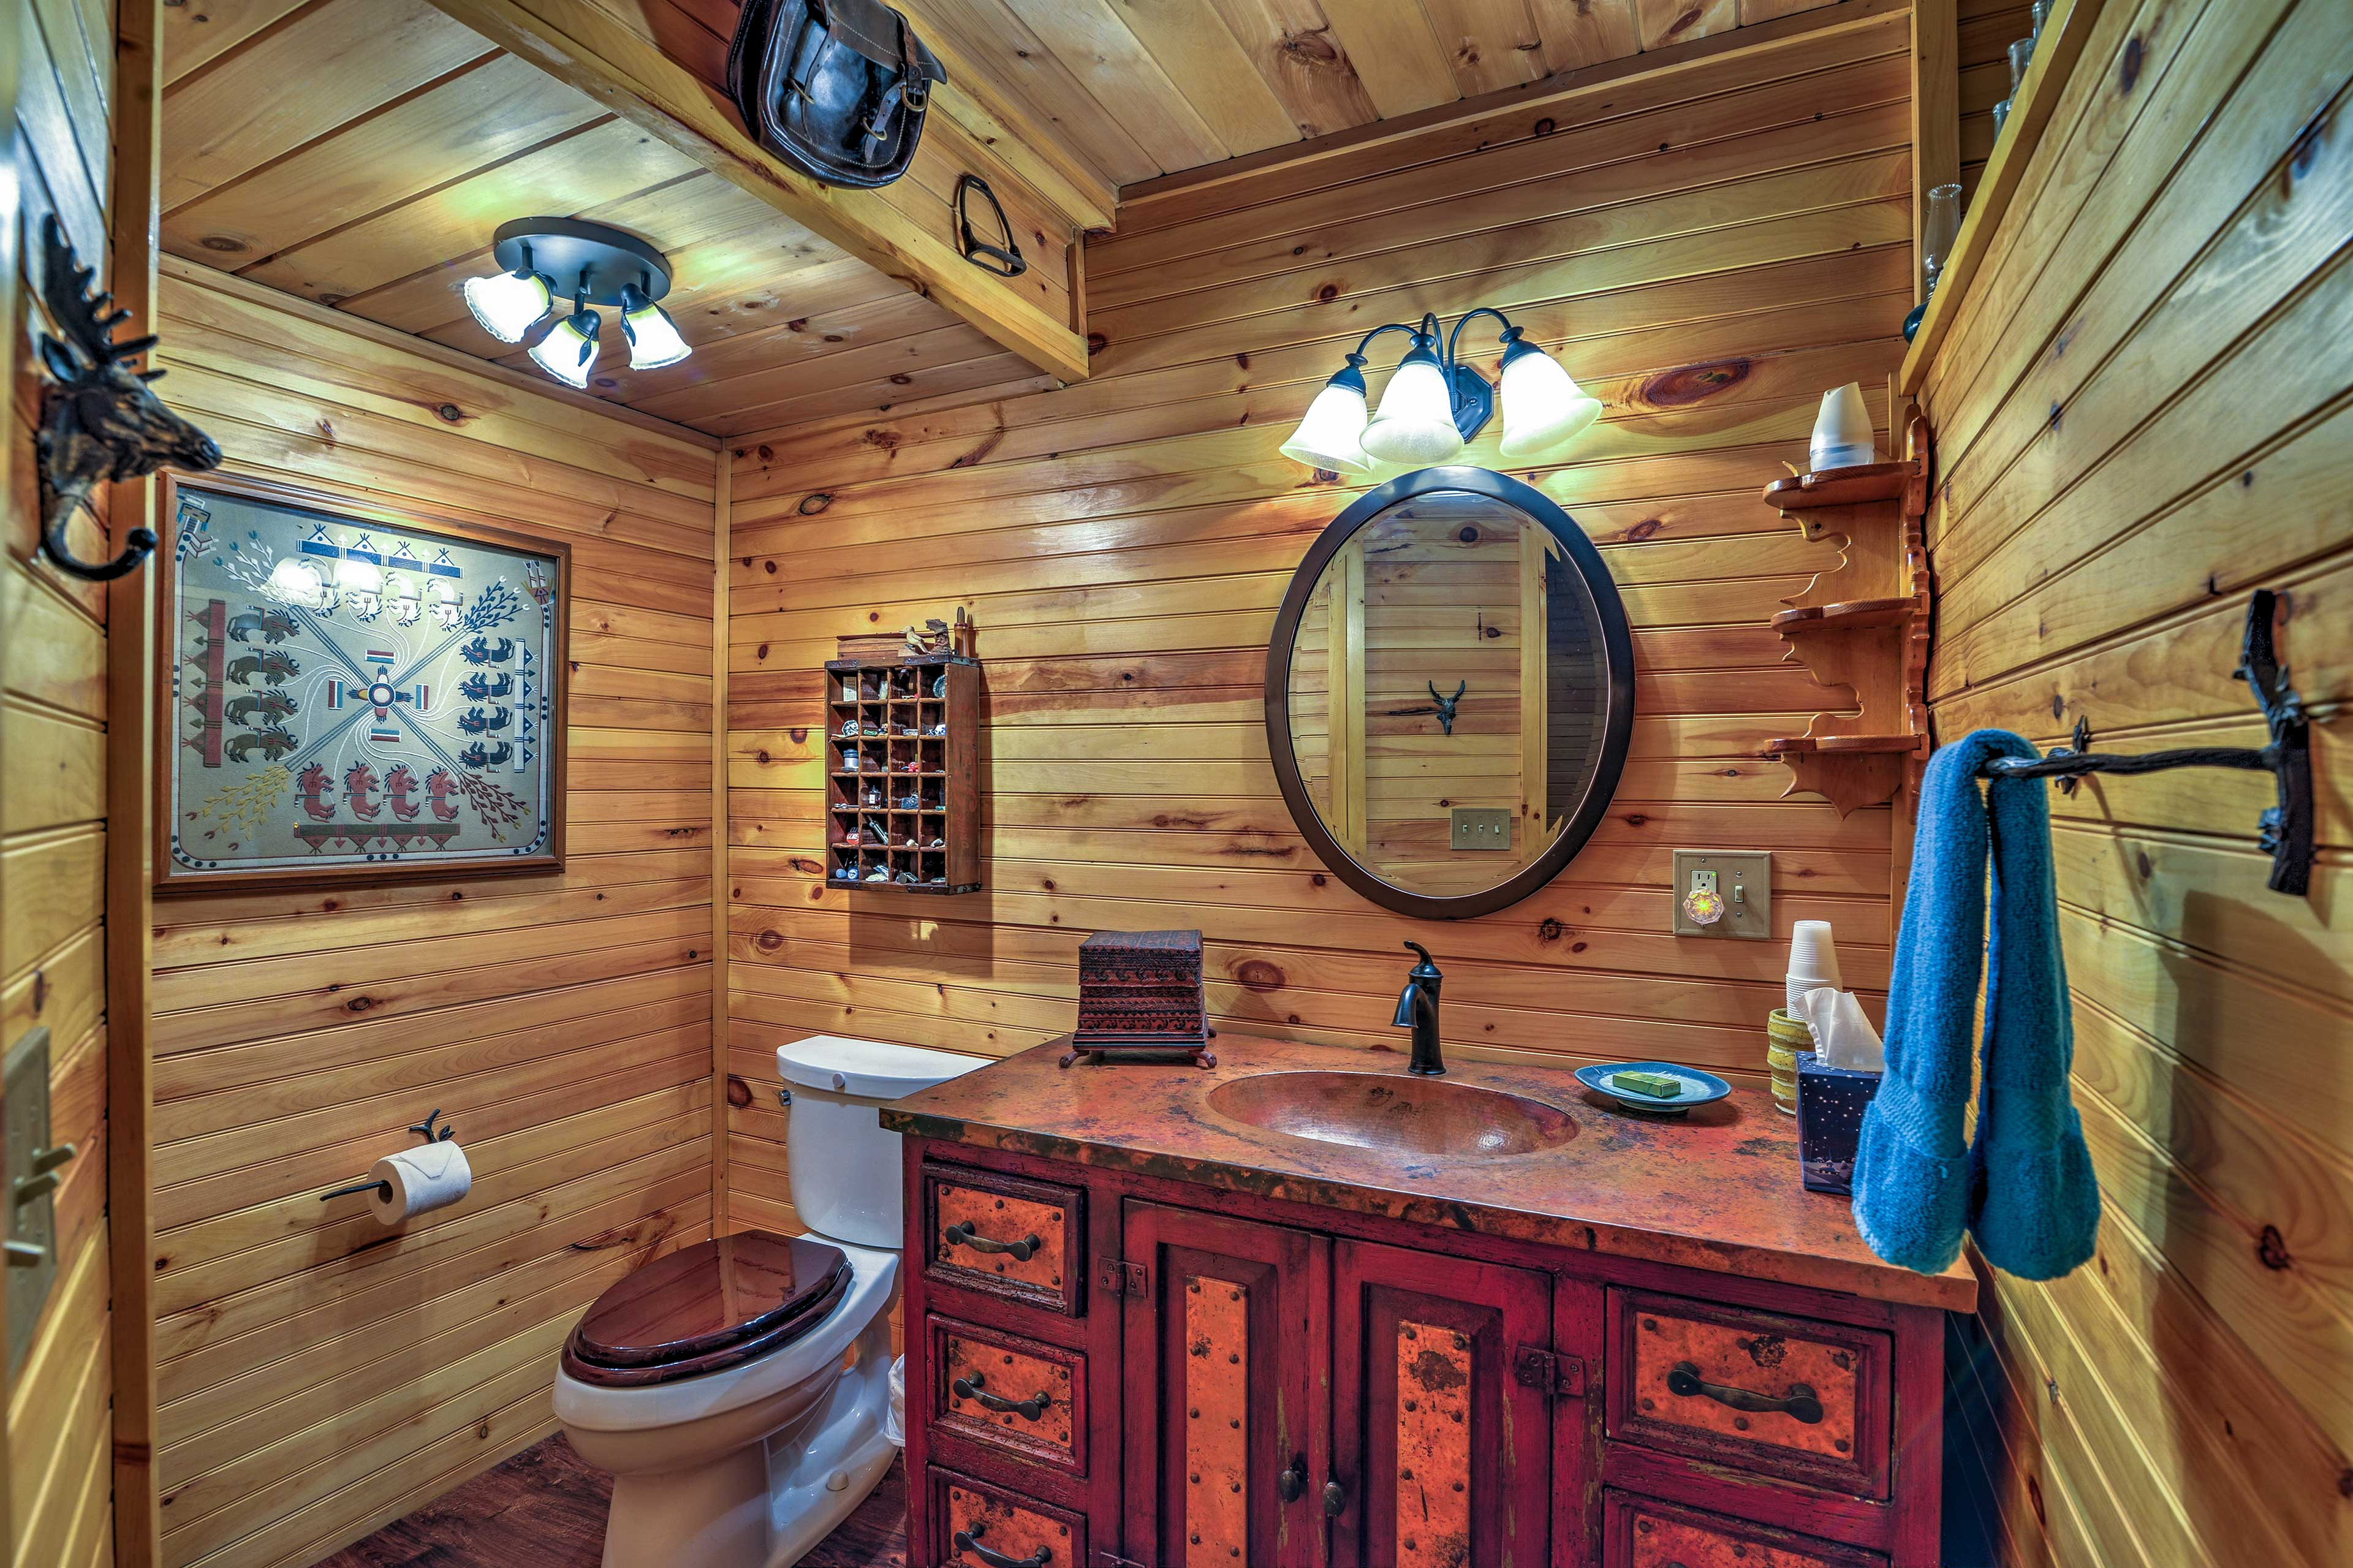 There's plenty of room for all of your toiletries in the bathroom.